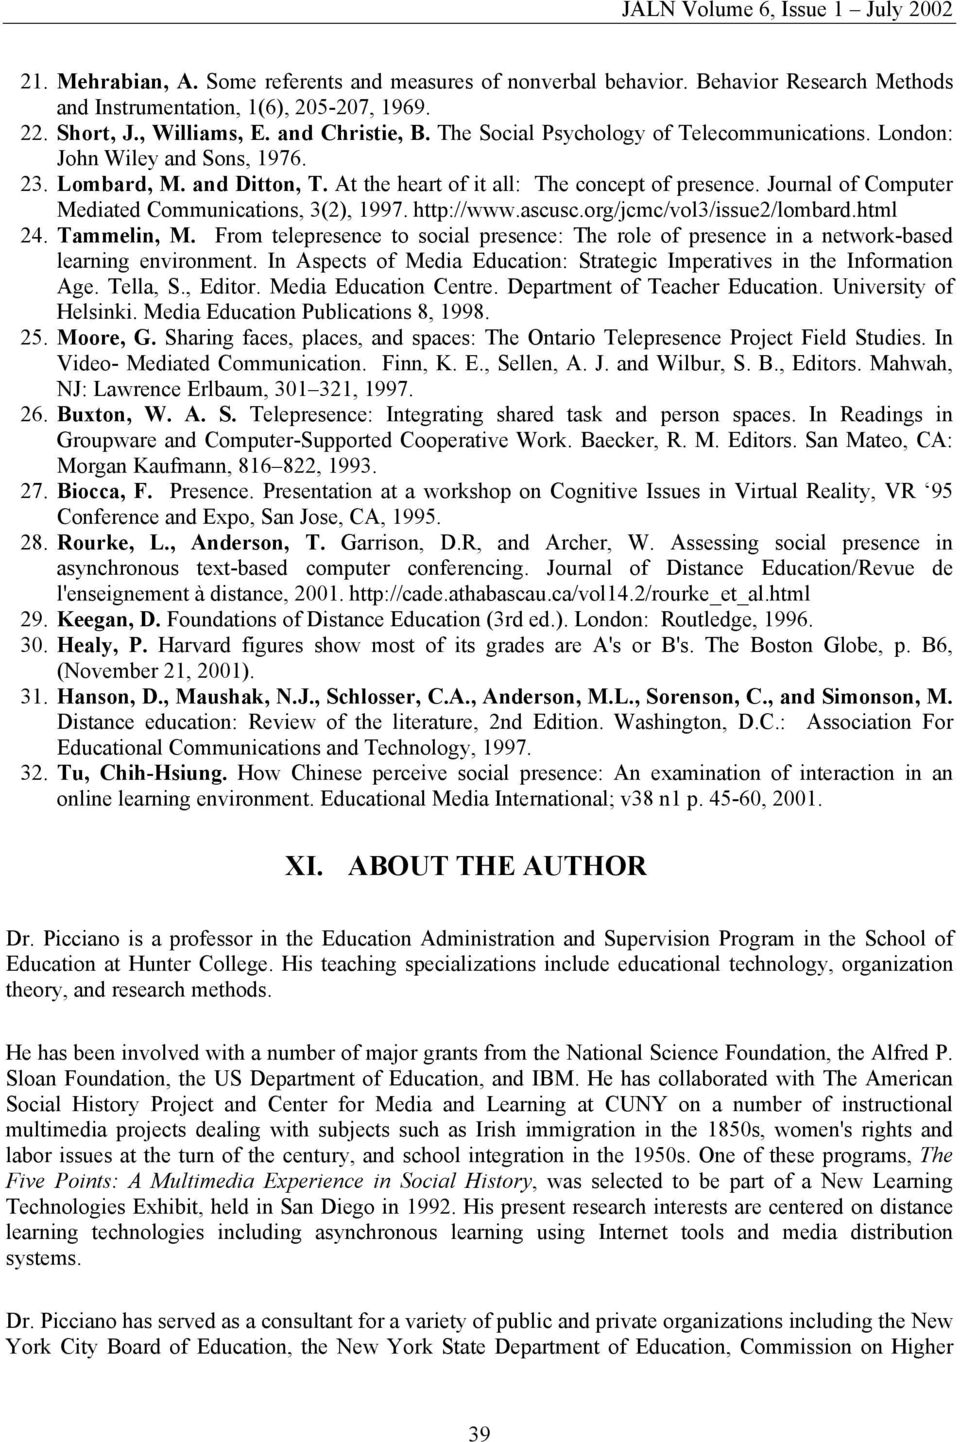 Journal of Computer Mediated Communications, 3(2), 1997. http://www.ascusc.org/jcmc/vol3/issue2/lombard.html 24. Tammelin, M.